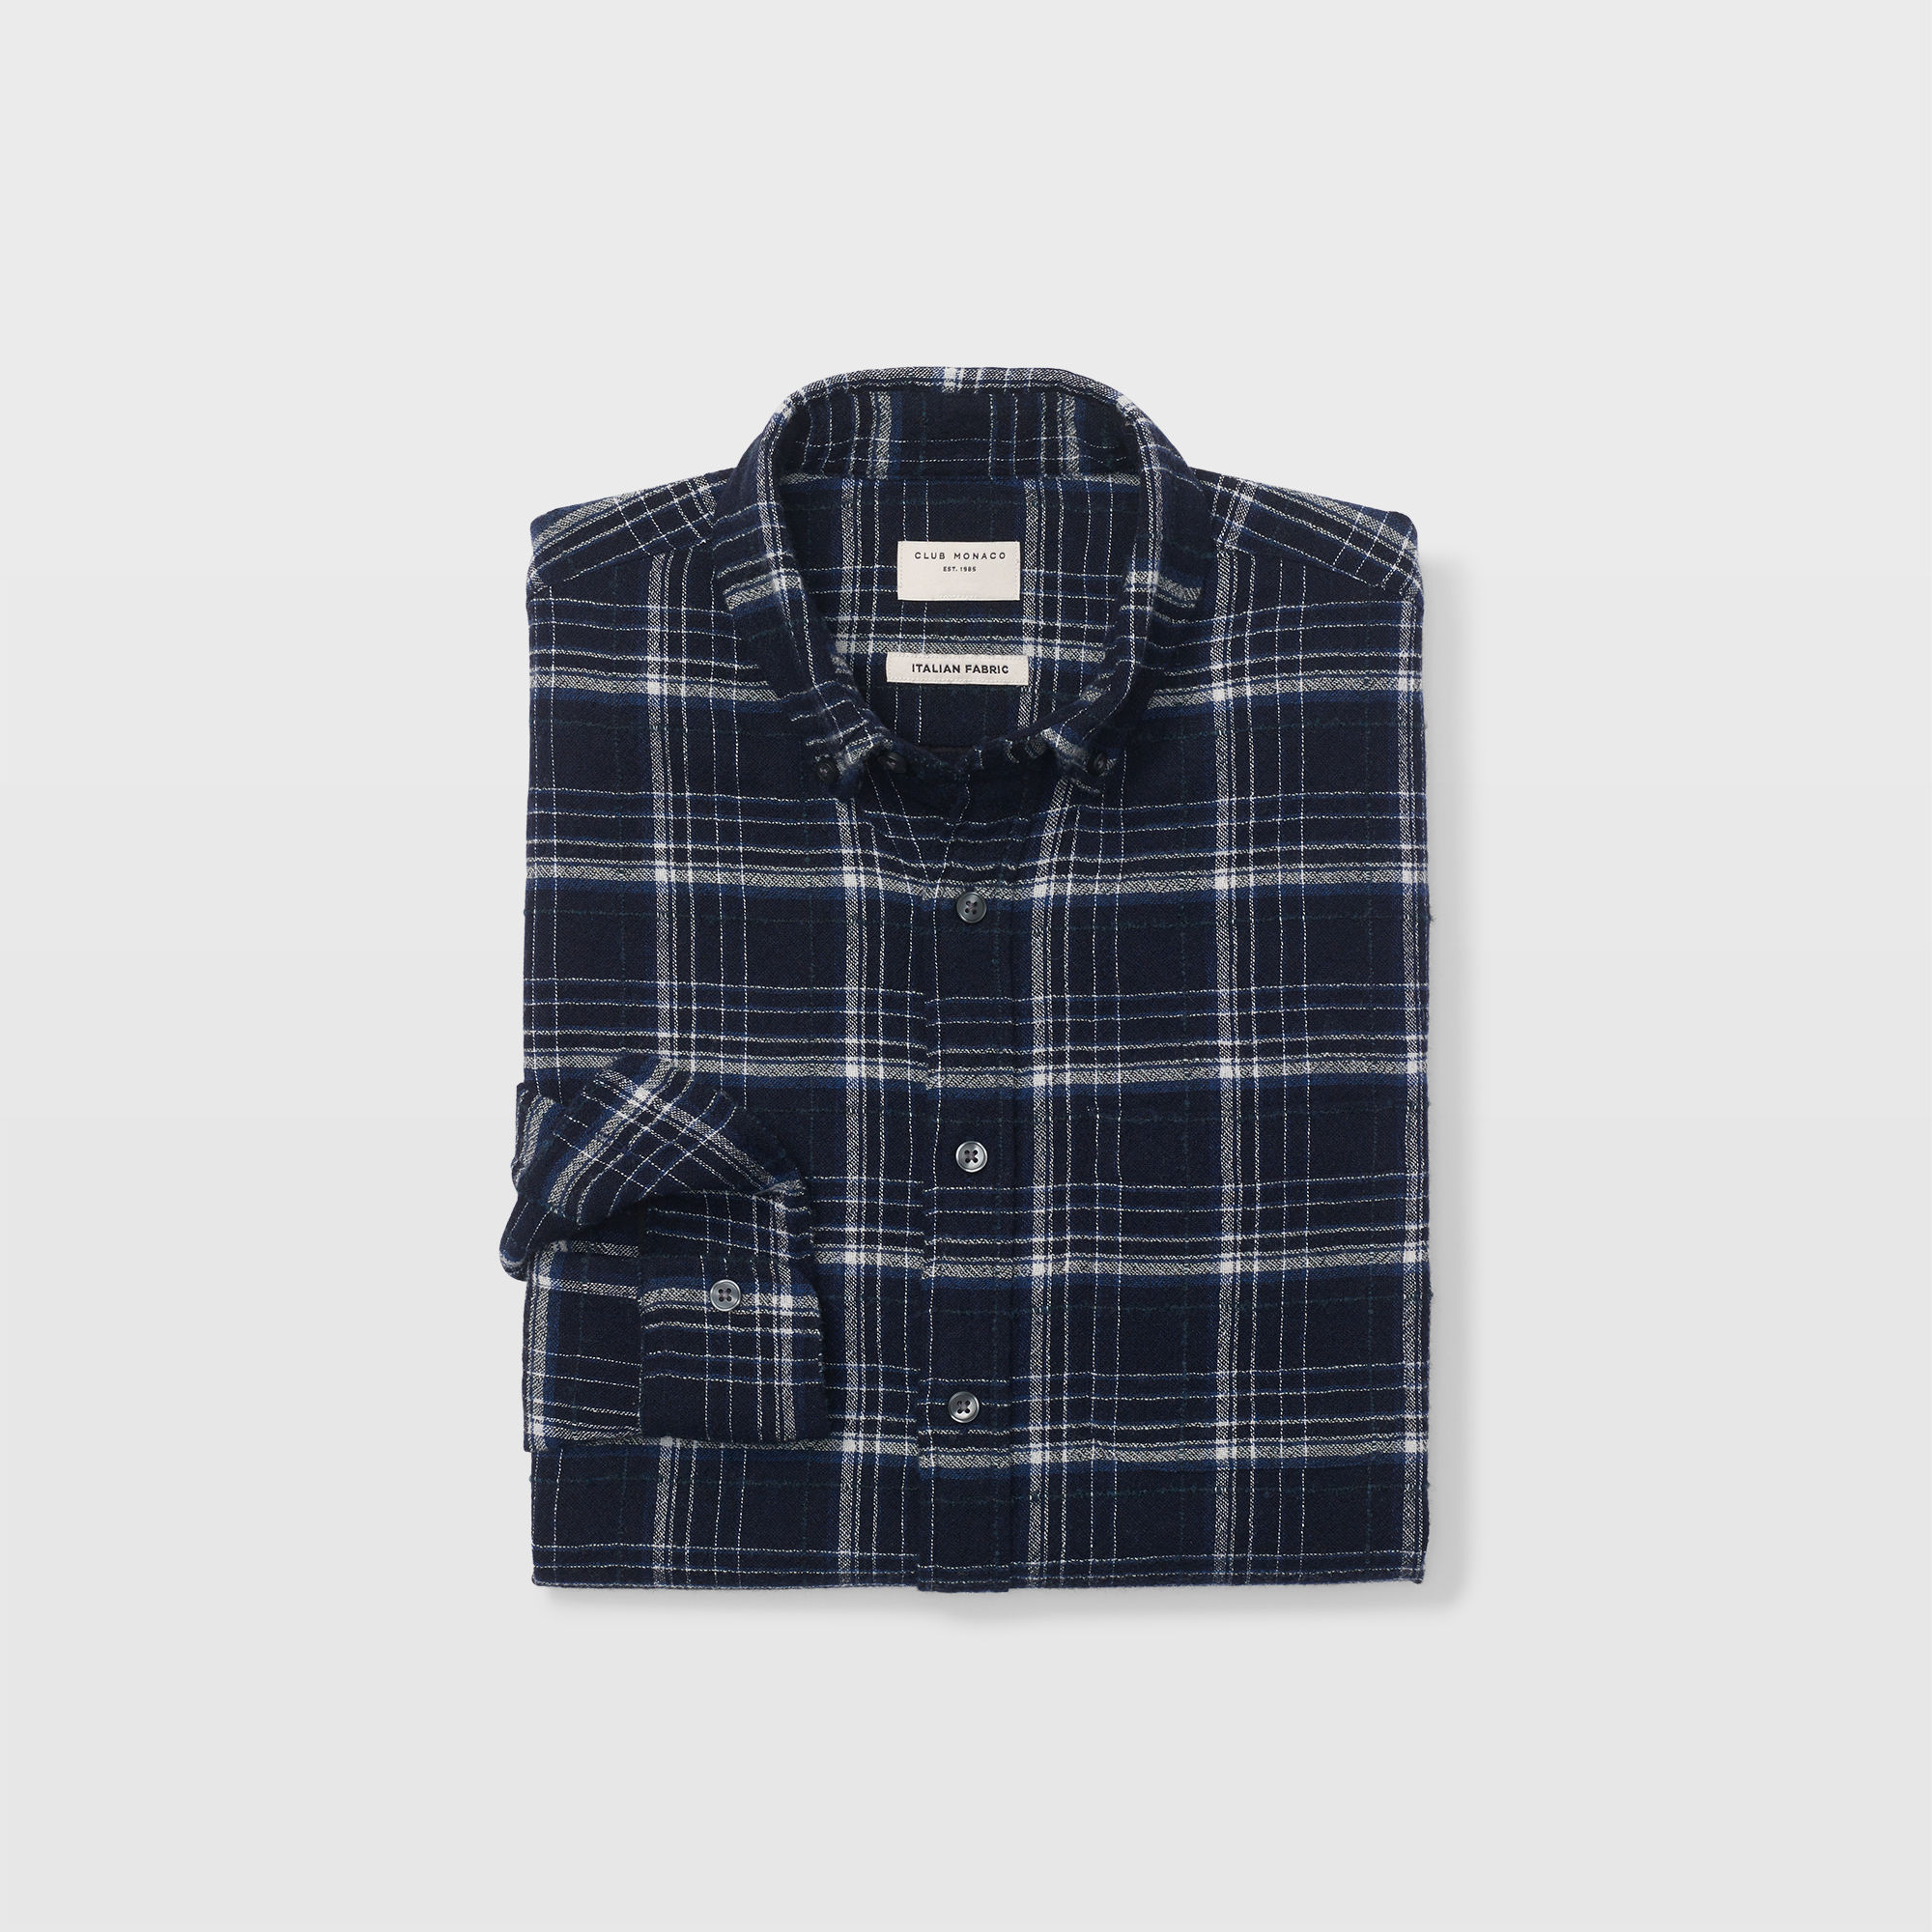 Nothing beats a flannel. A wooly texture and a menswear shape add to the appeal. - Club Monaco